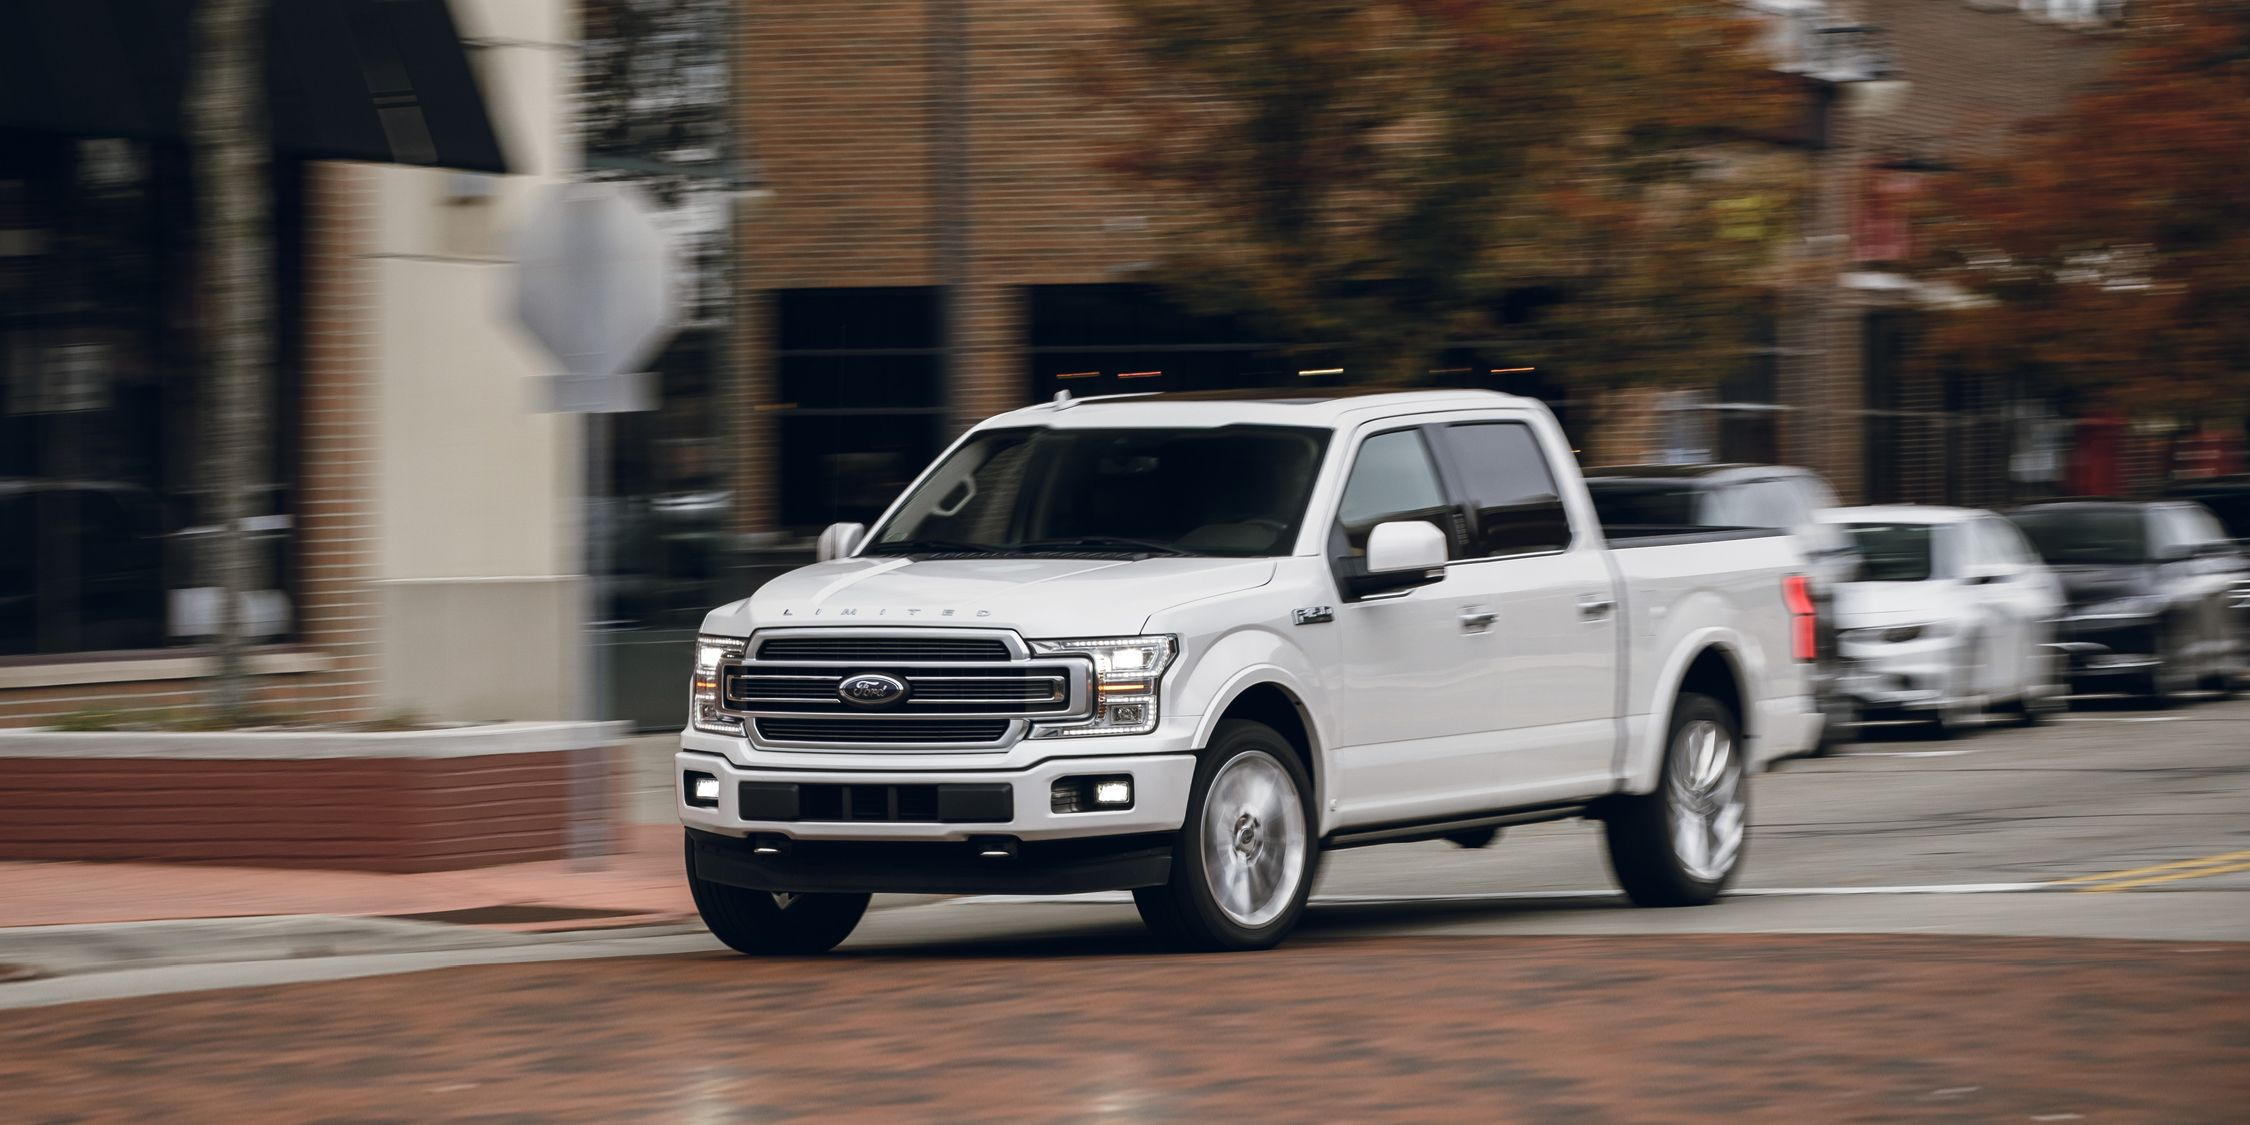 The Ram Trx High Performance Pickup Is Happening For Real News